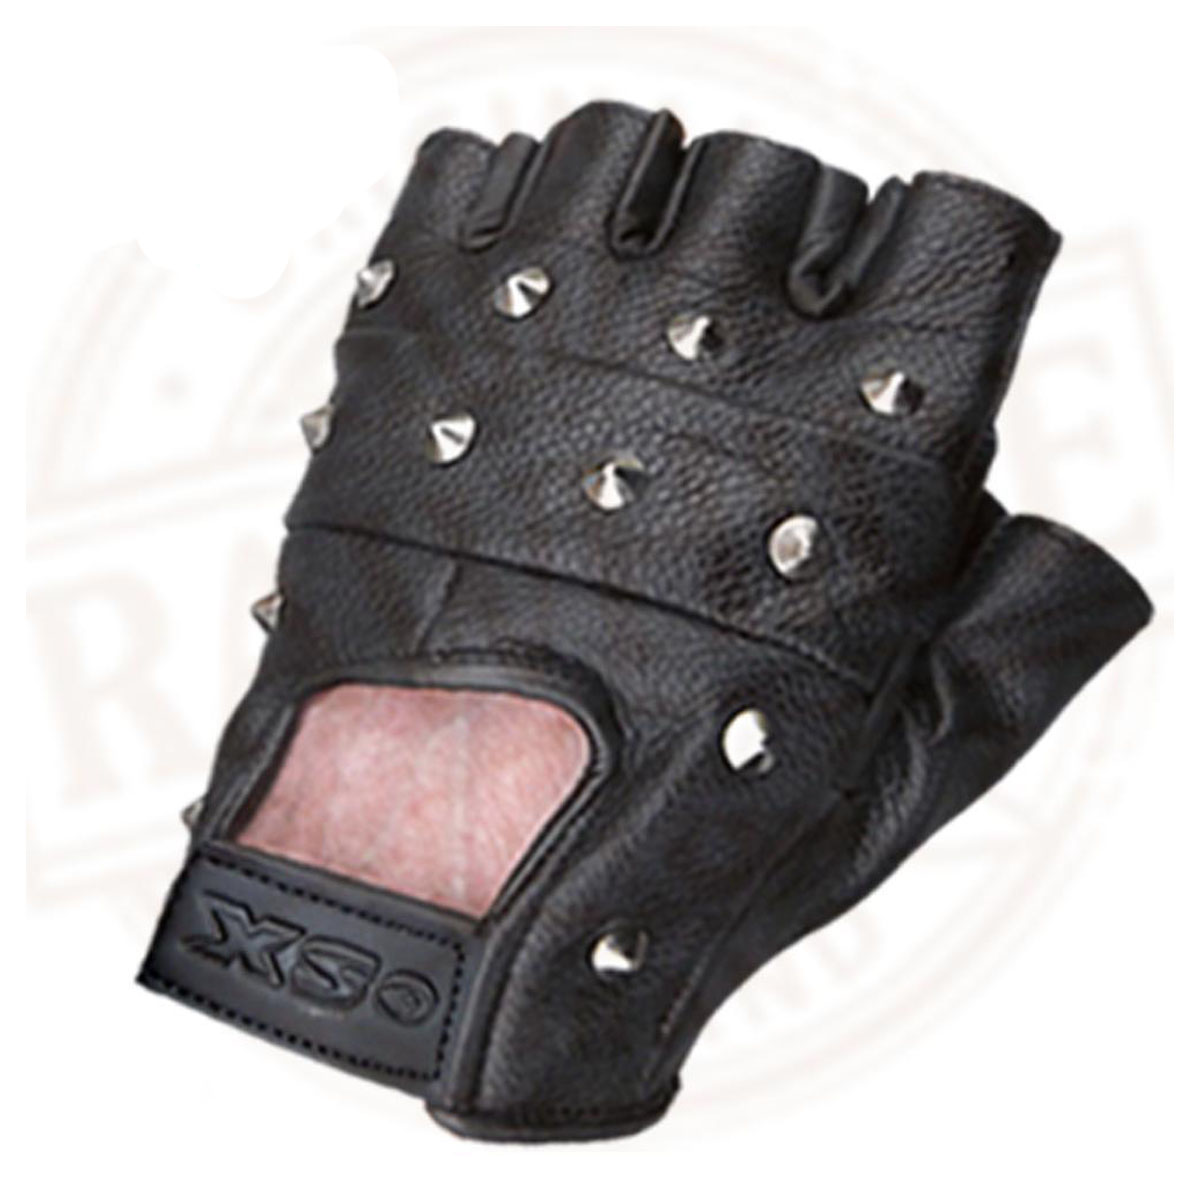 Dam Leather Weight Lifting Gym Gloves Real Leather Women S: LEATHER FINGERLESS GLOVES BIKER DRIVING CYCLING WHEELCHAIR